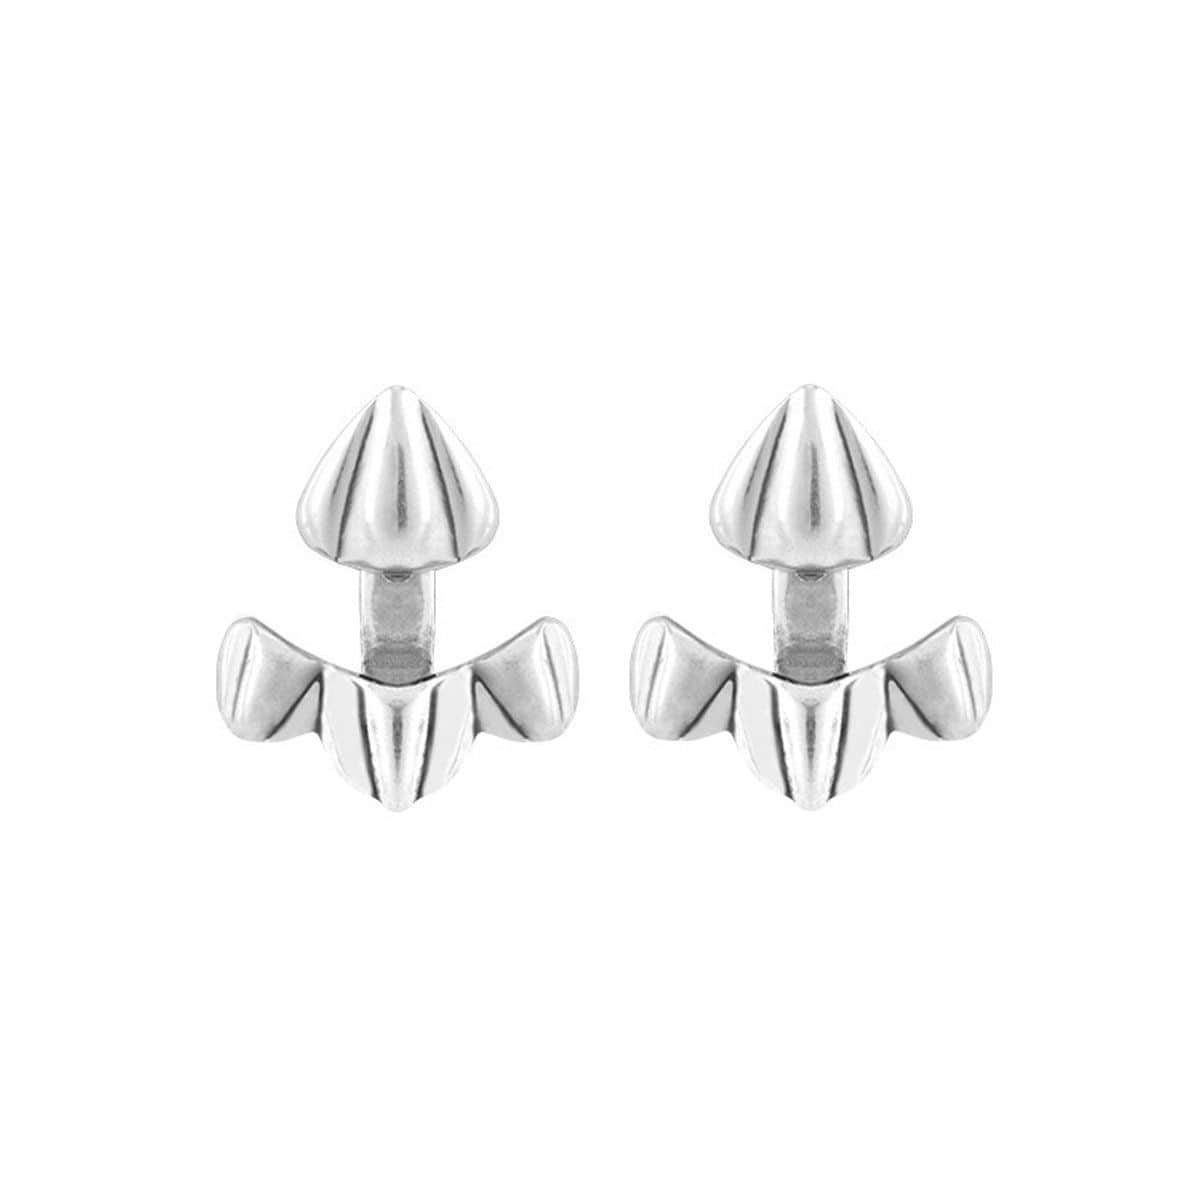 Munwezi Layered Silver Earrings - PEN0531MTL0000U-UNO de 50-Renee Taylor Gallery